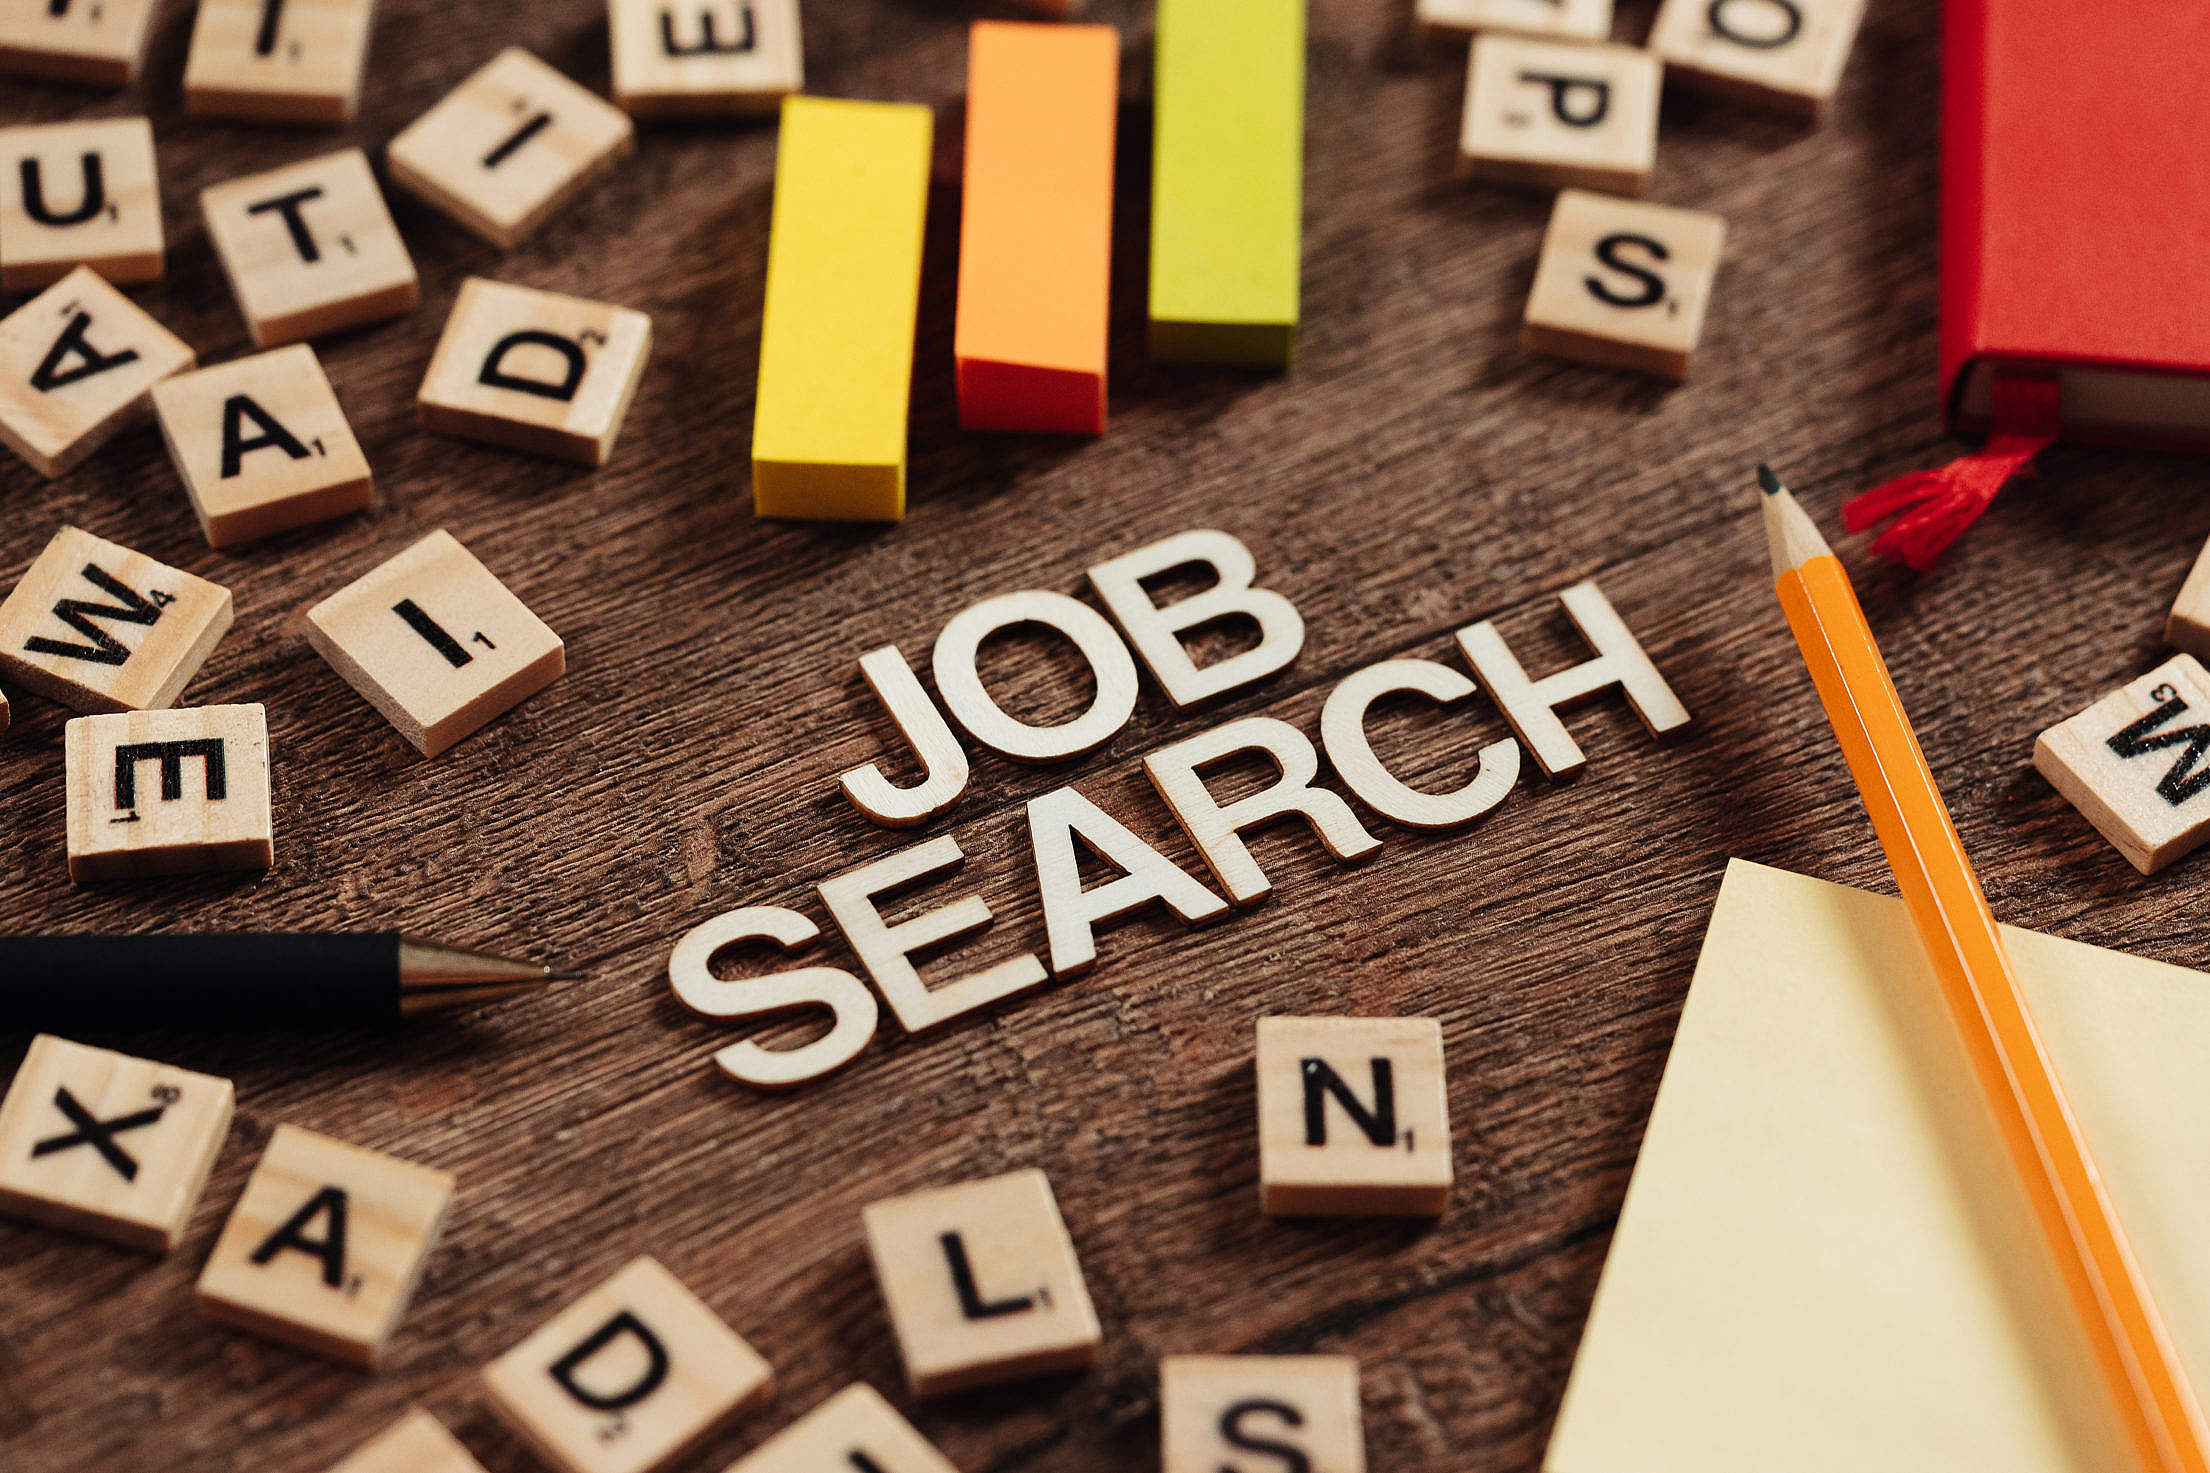 Searching for a New Job Free Stock Photo